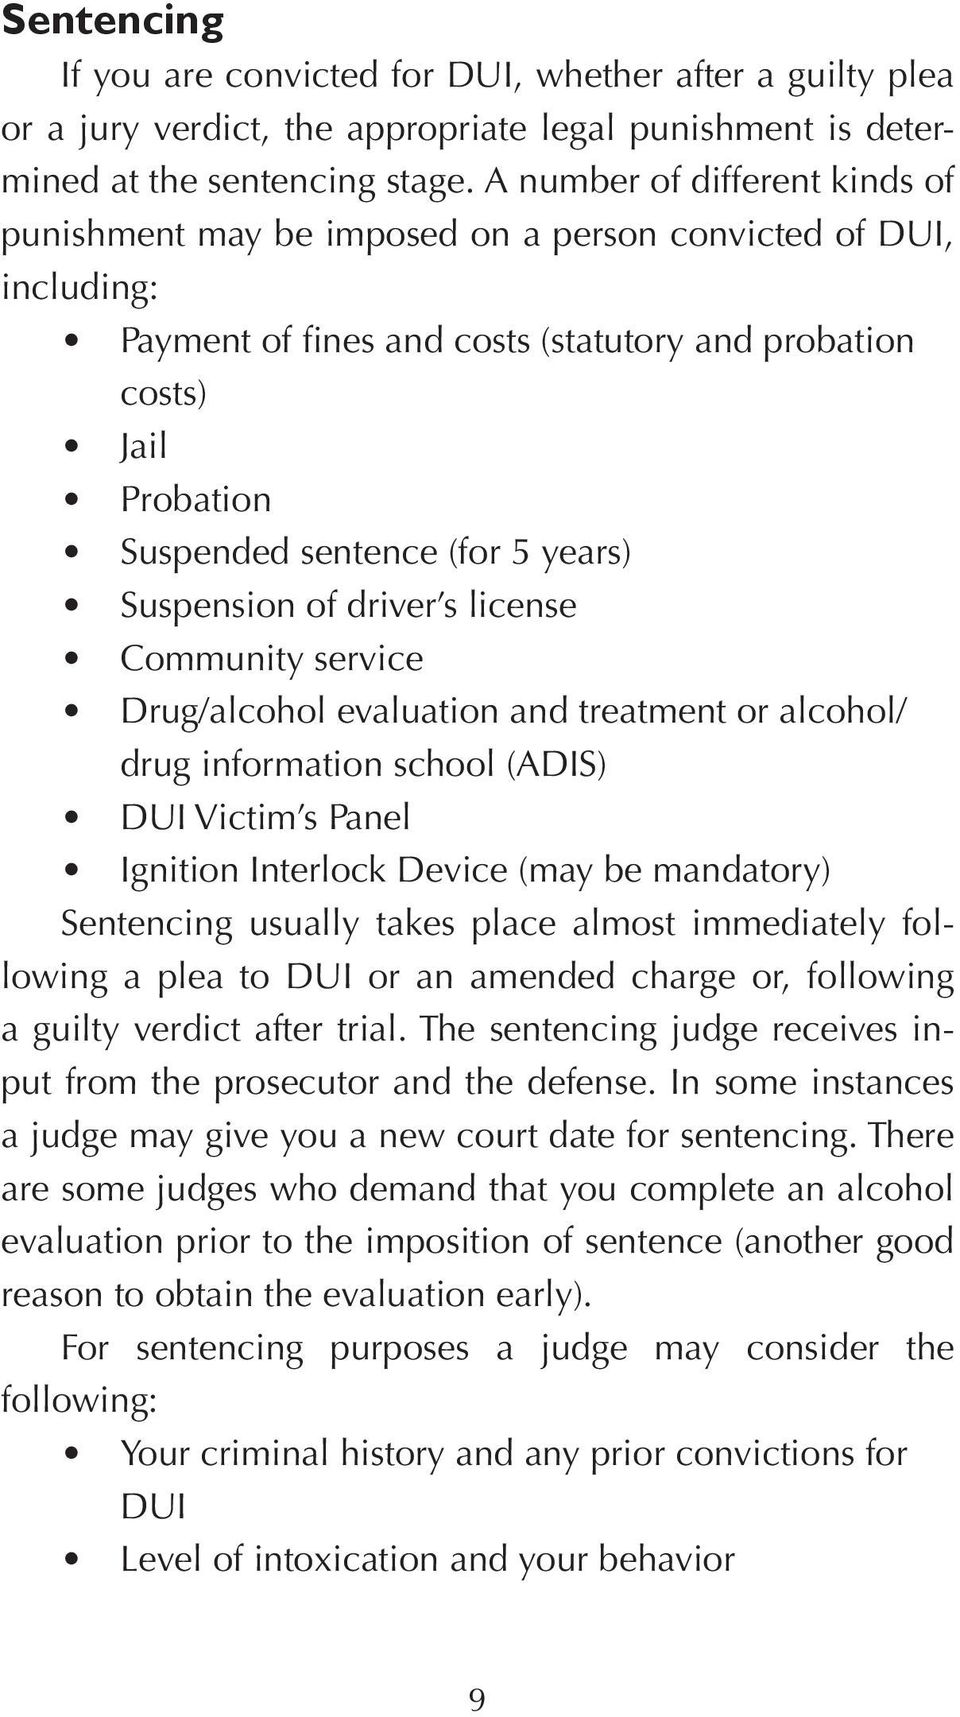 years) Suspension of driver s license Community service Drug/alcohol evaluation and treatment or alcohol/ drug information school (ADIS) DUI Victim s Panel Ignition Interlock Device (may be